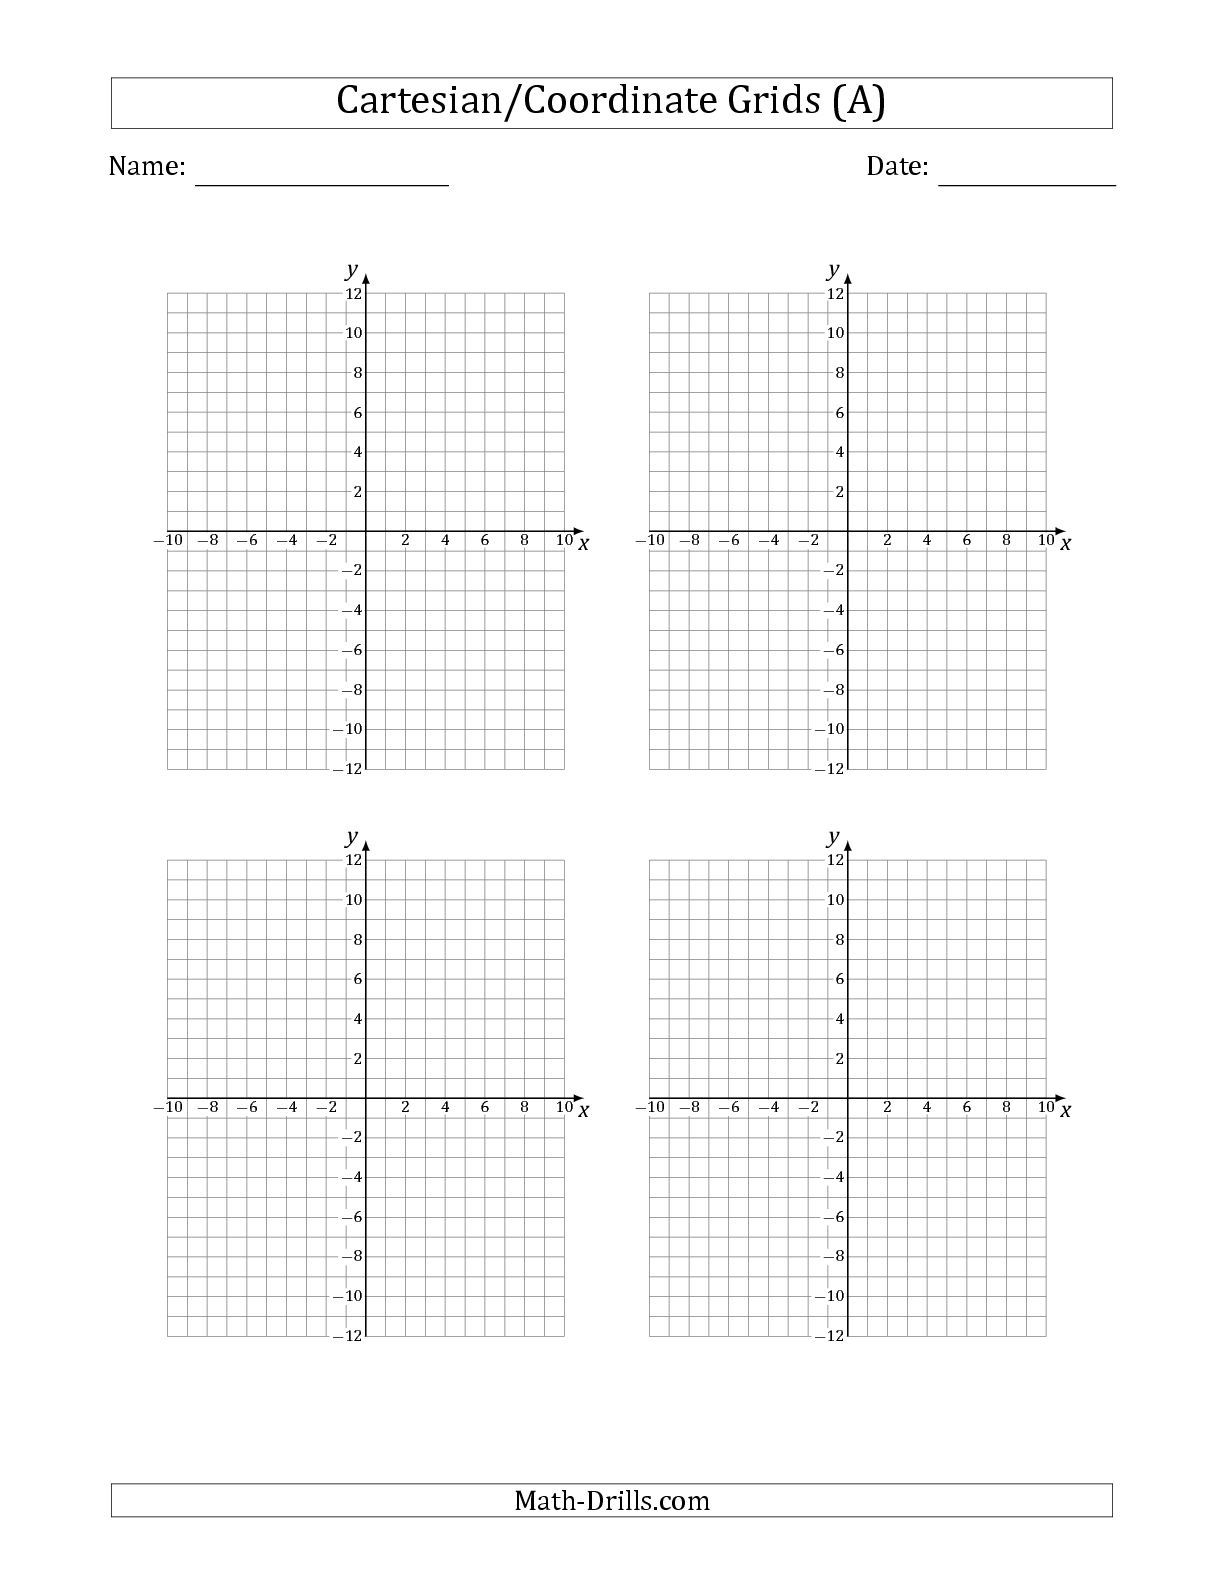 medium resolution of The 4 Per Page Cartesian/Coordinate Grids math worksheet from the Graph  Paper page at Mat…   Coordinate grid